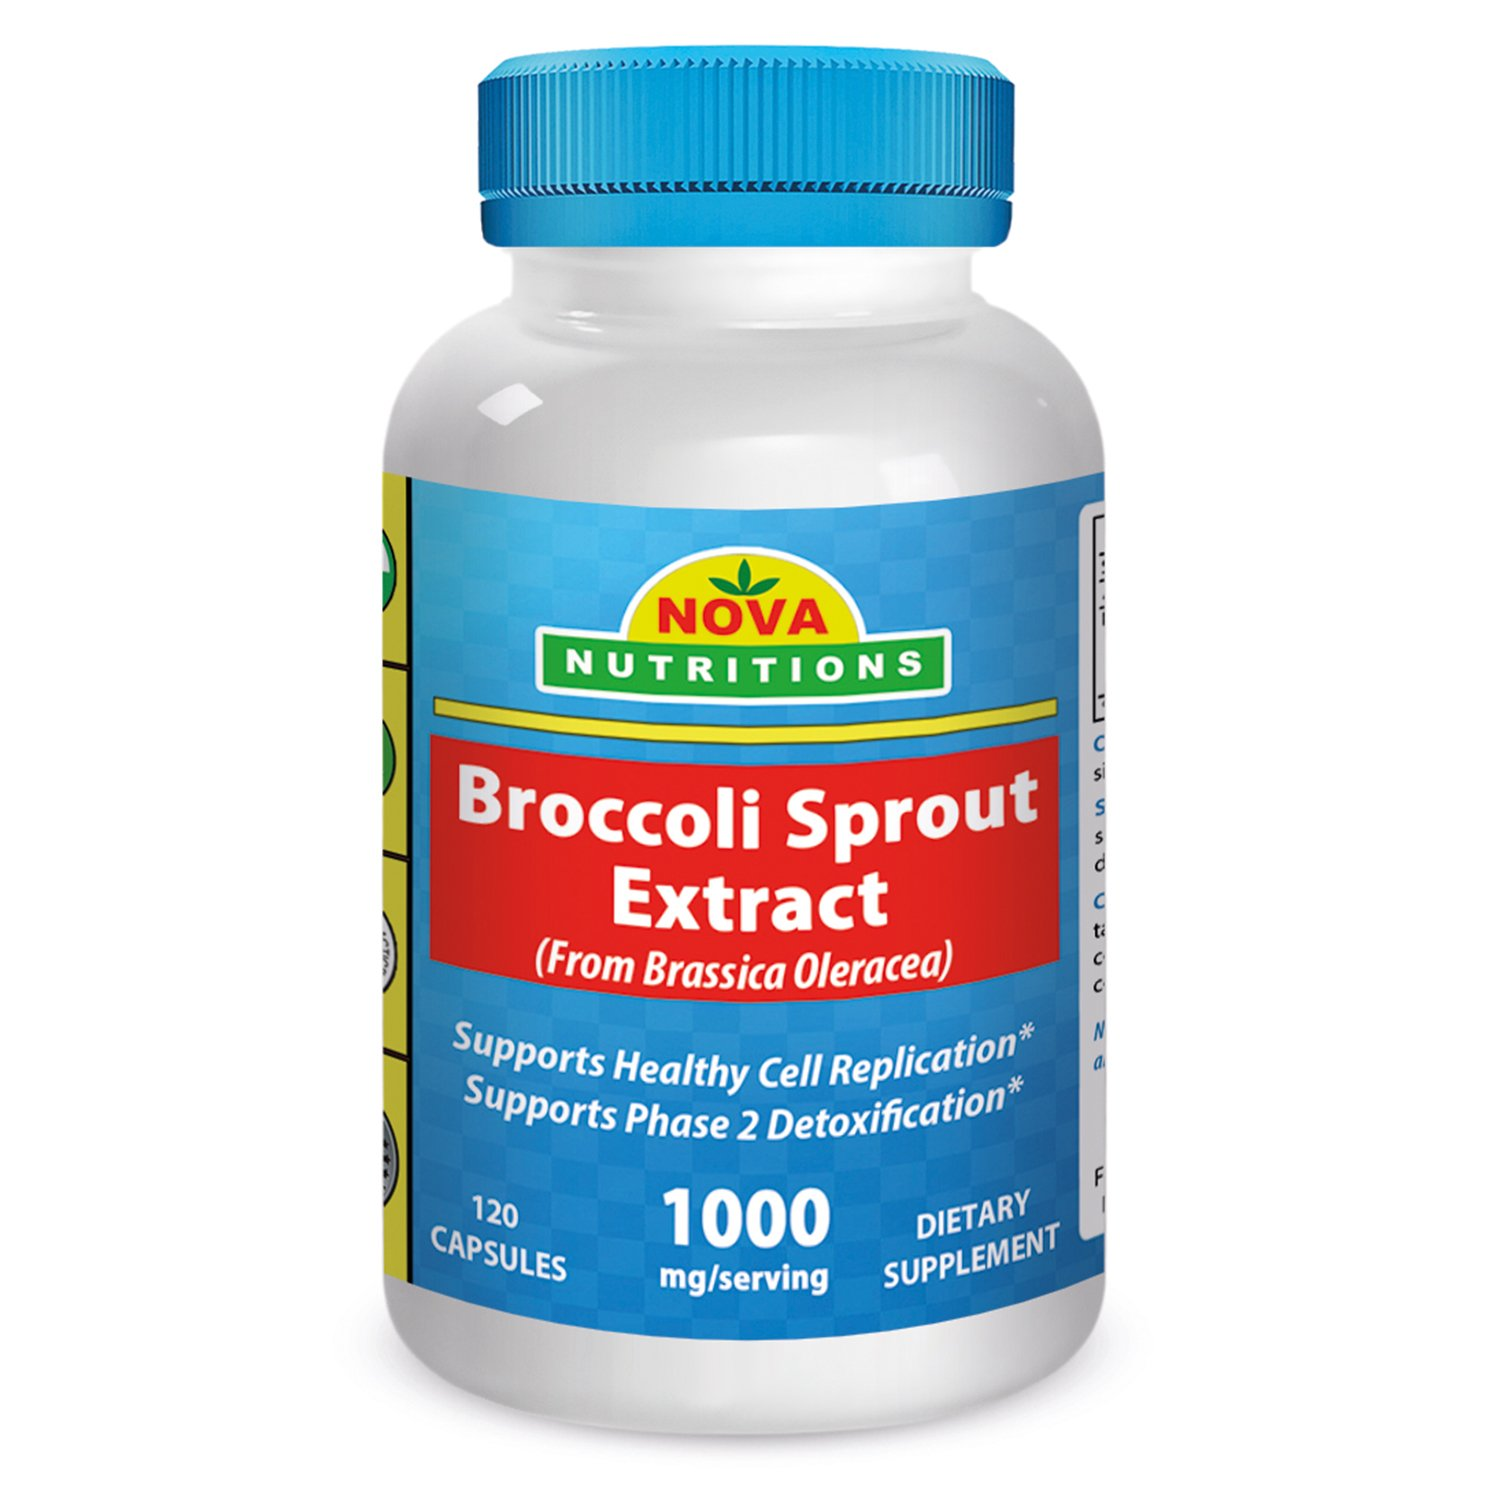 Broccoli Sprout Extract 1000 mg 120 Capsules by Nova Nutritions